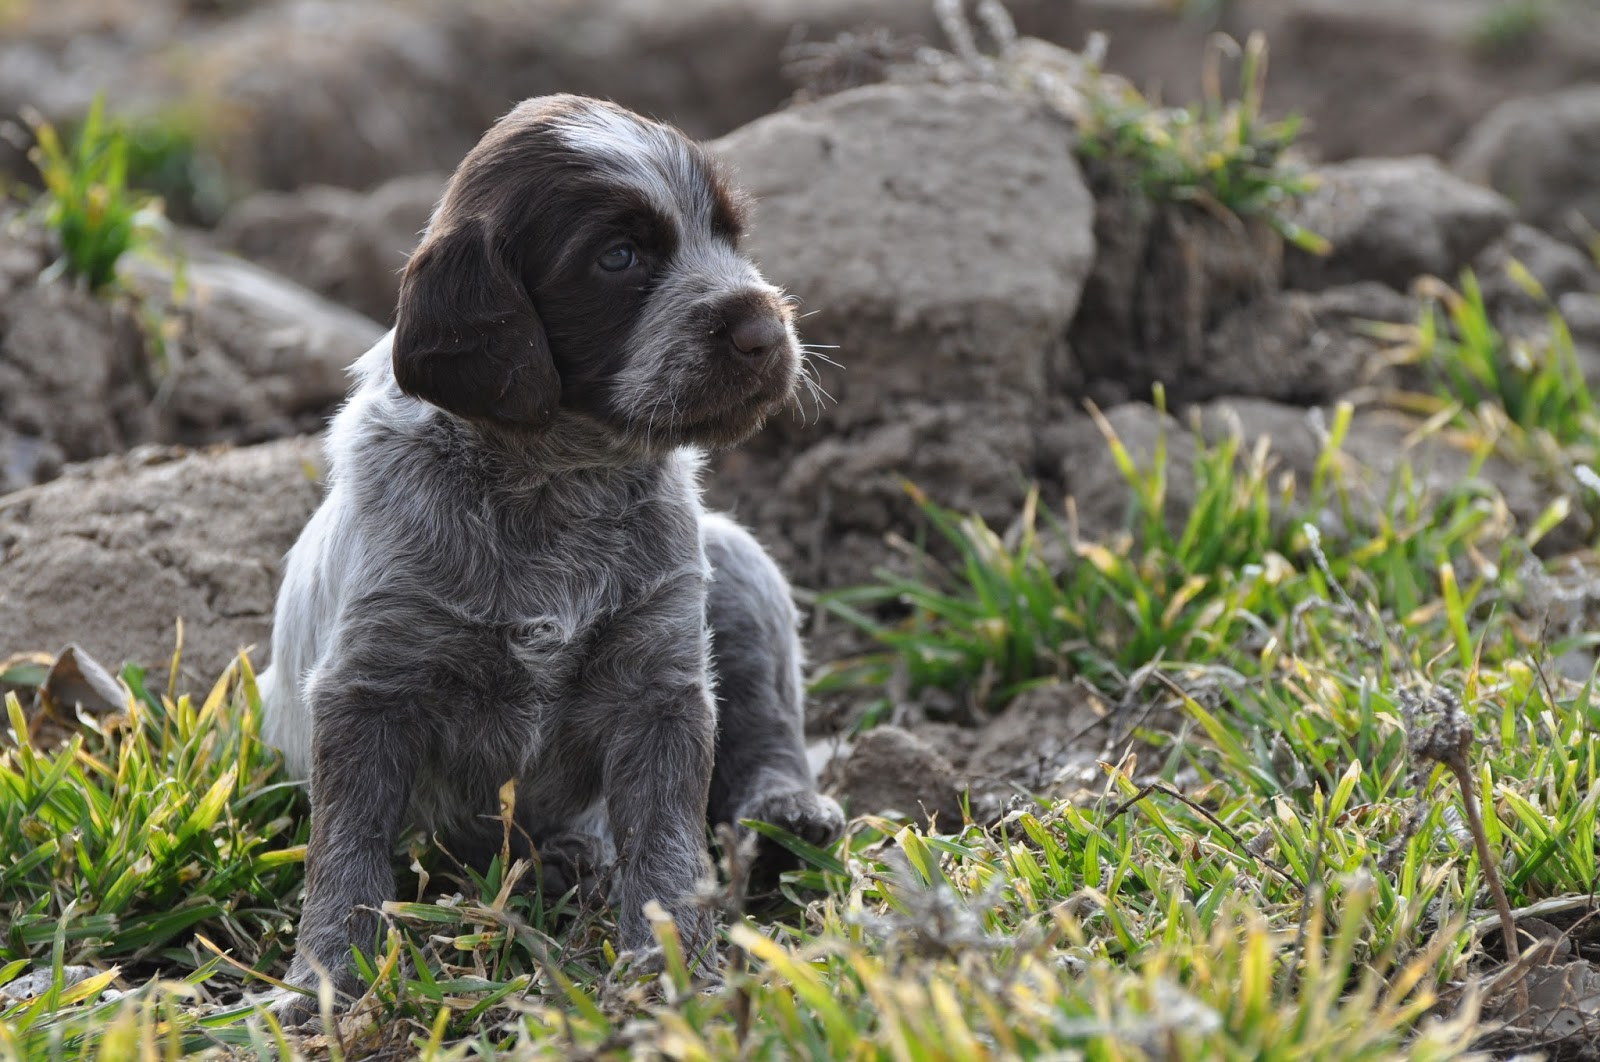 Idaho Outback Wire Haired Pointing Griffons, Puppies soon! : Boys